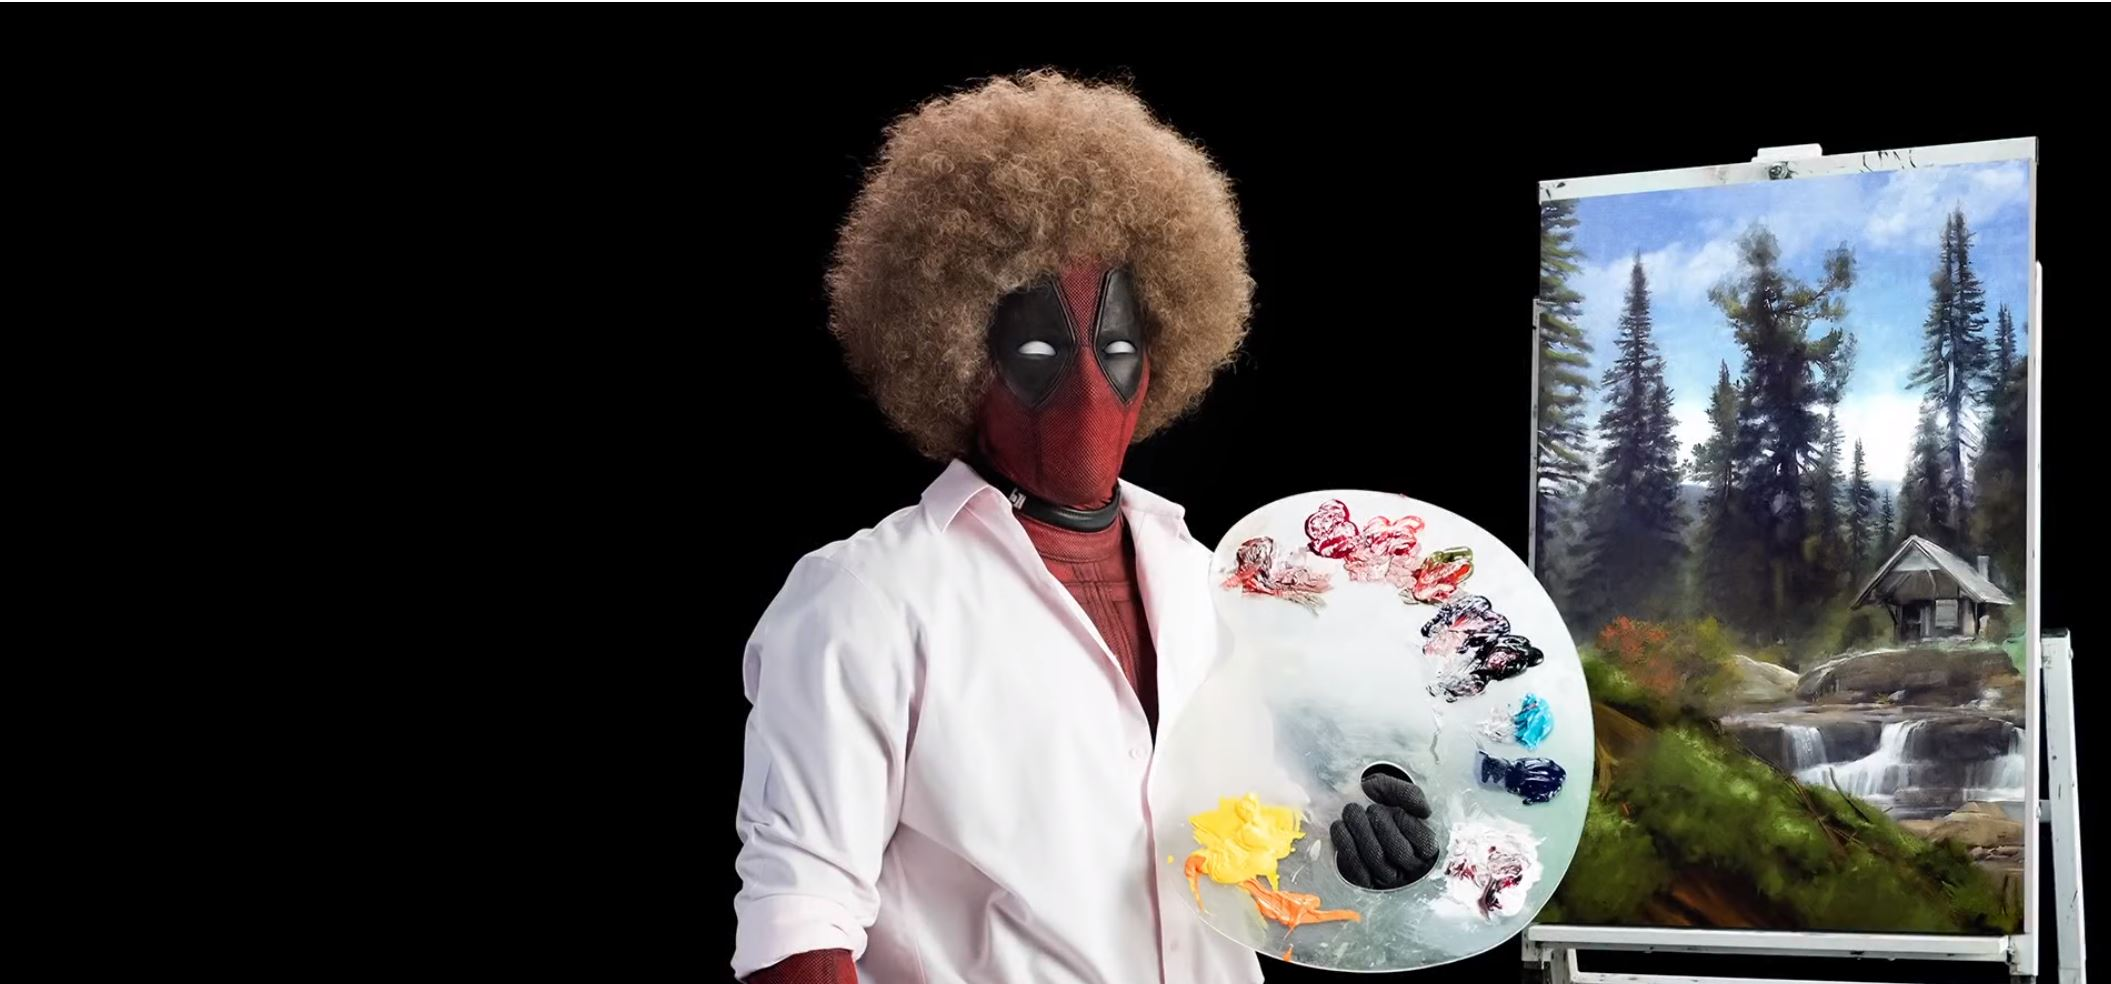 DEADPOOL 2 Official Teaser Trailer 2 Feat. Ryan Reynolds (2018)